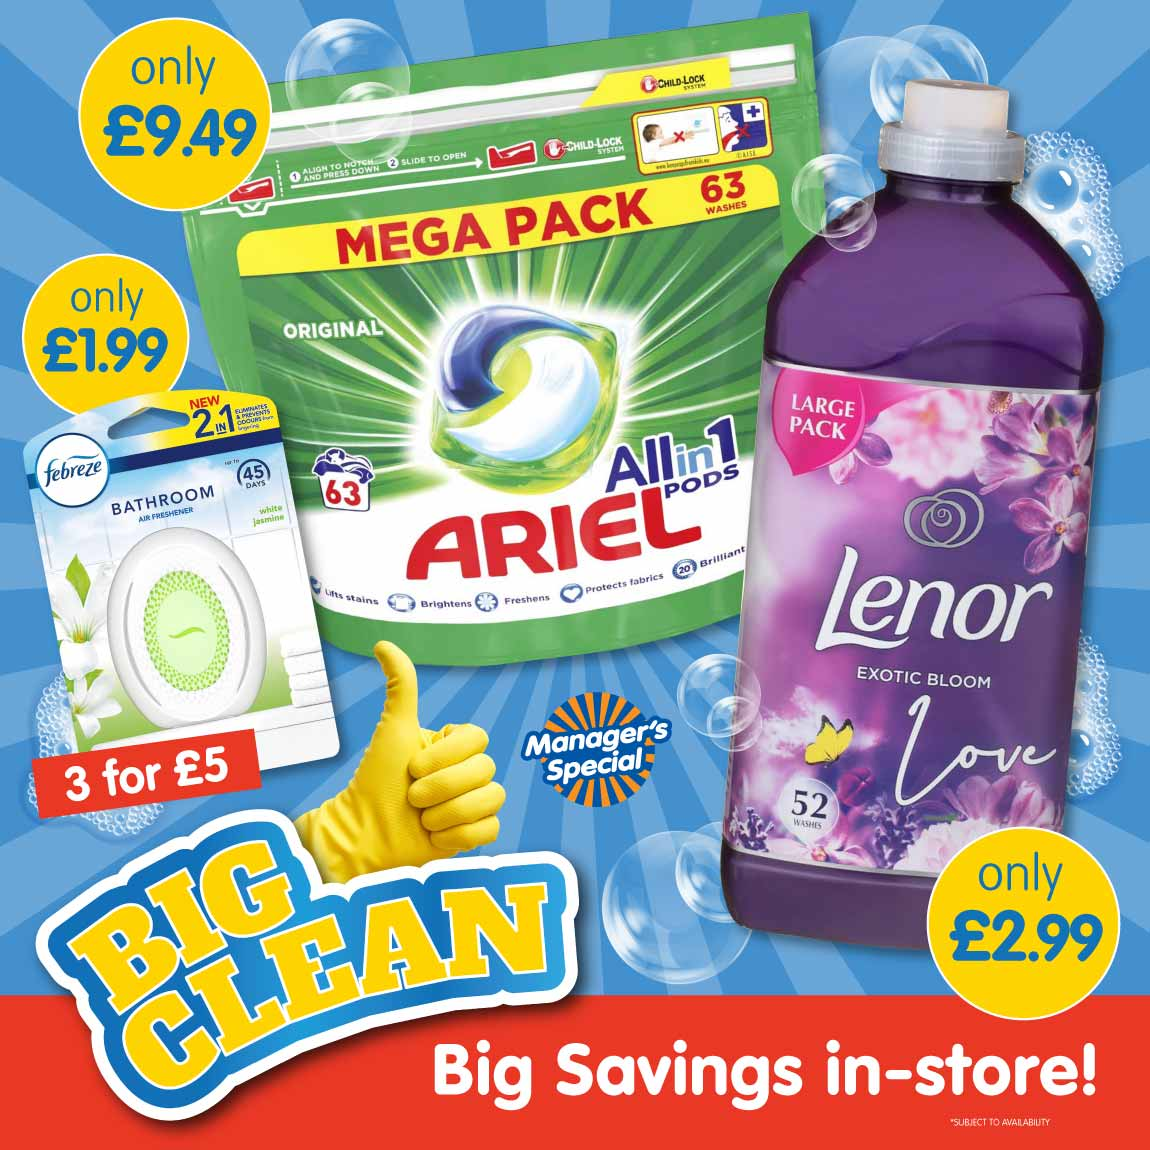 Save on Fairy, Ariel, Lenor, Flash and Febreze at B&M.